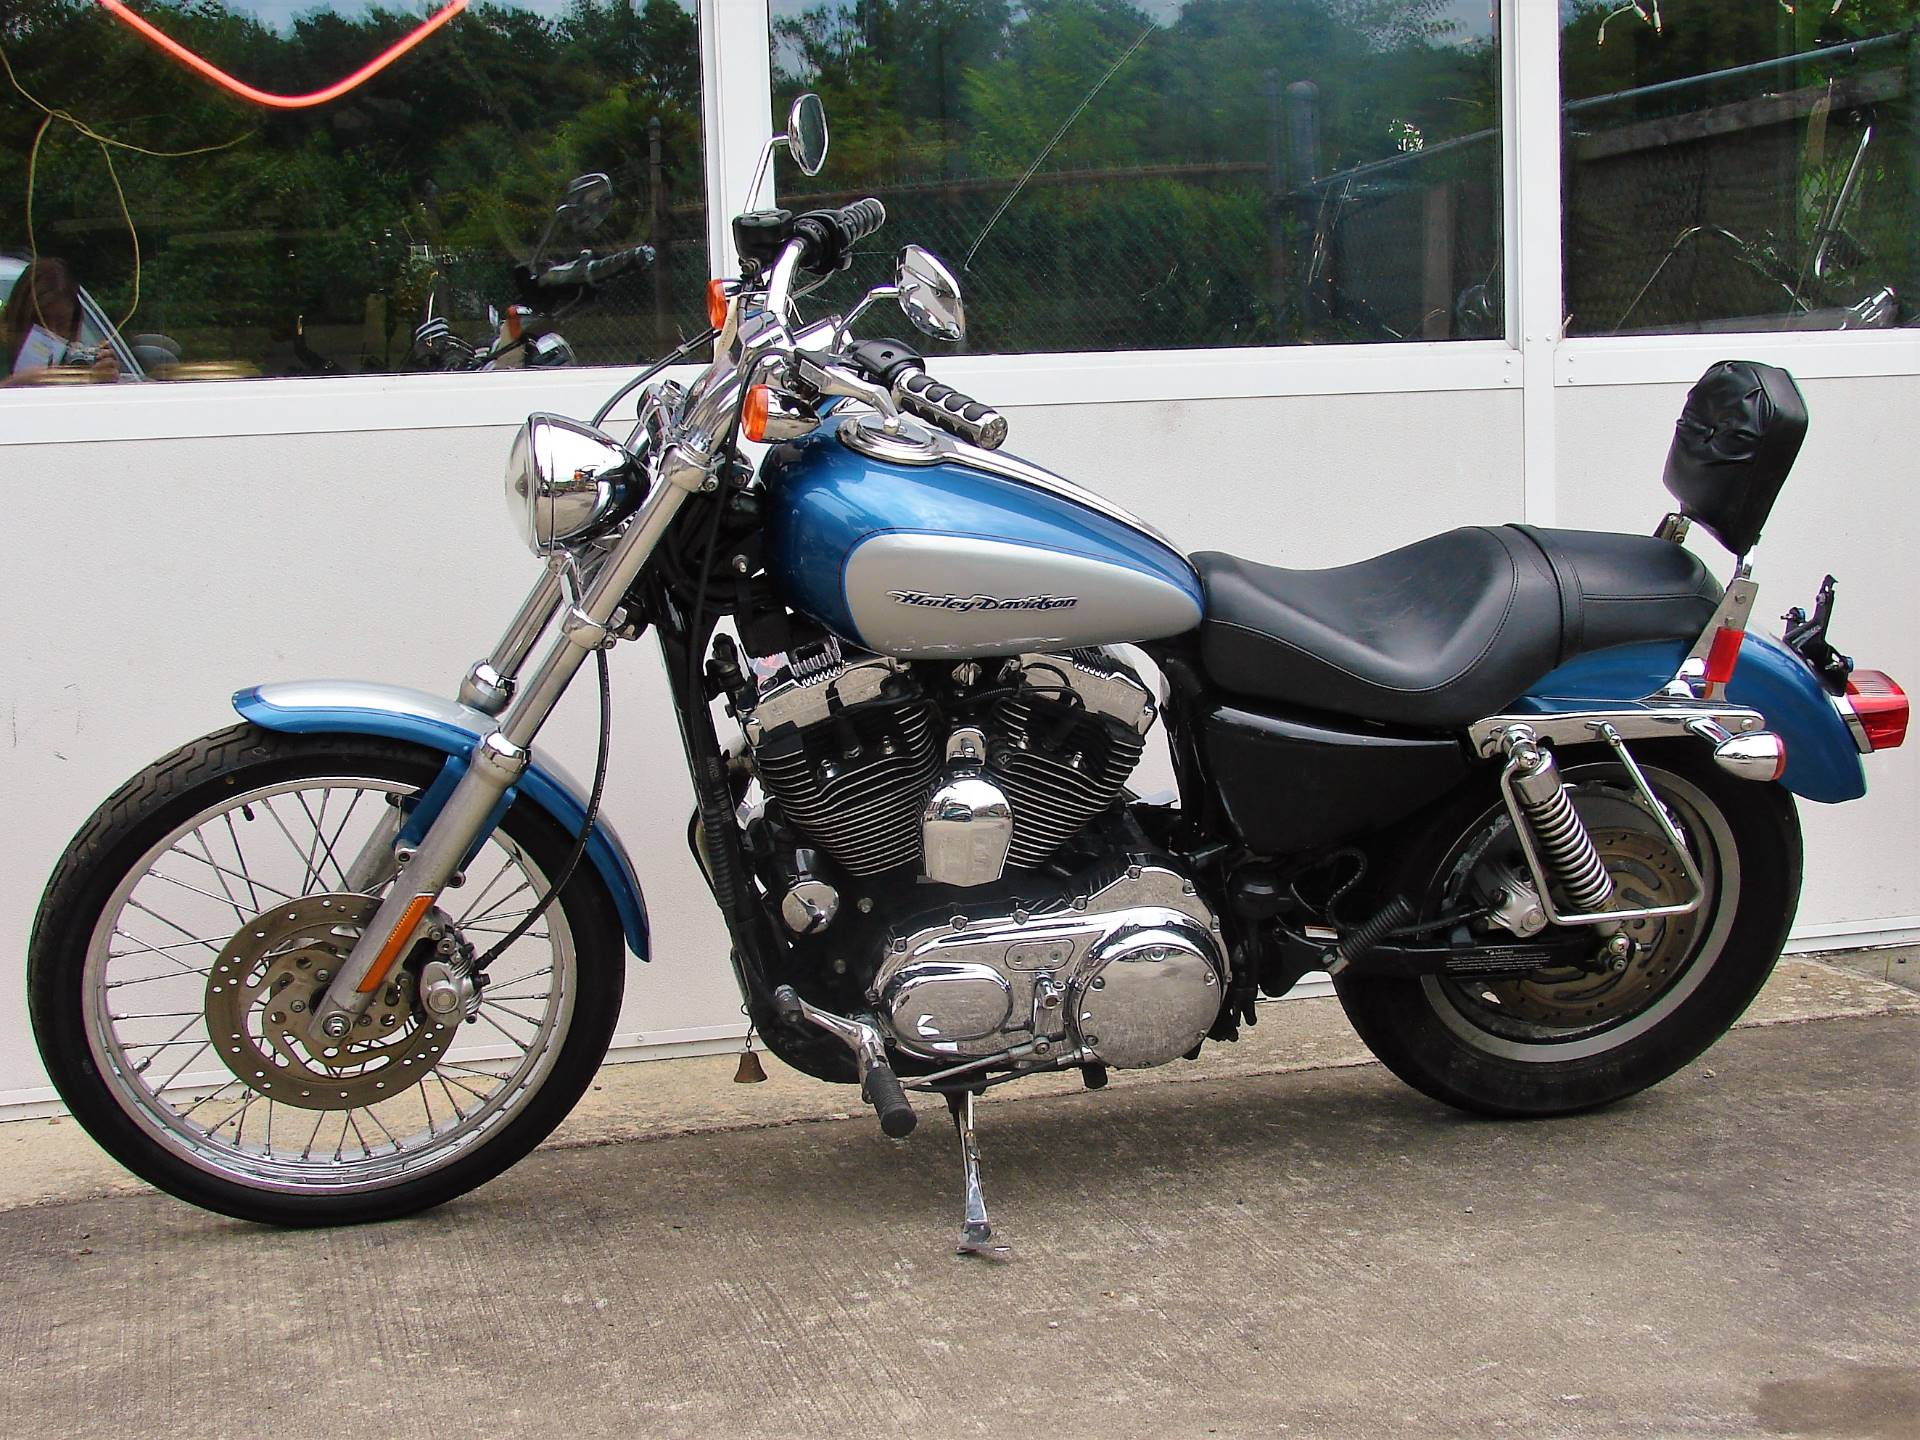 2005 Harley-Davidson Sportster® XL 1200 Custom in Williamstown, New Jersey - Photo 7